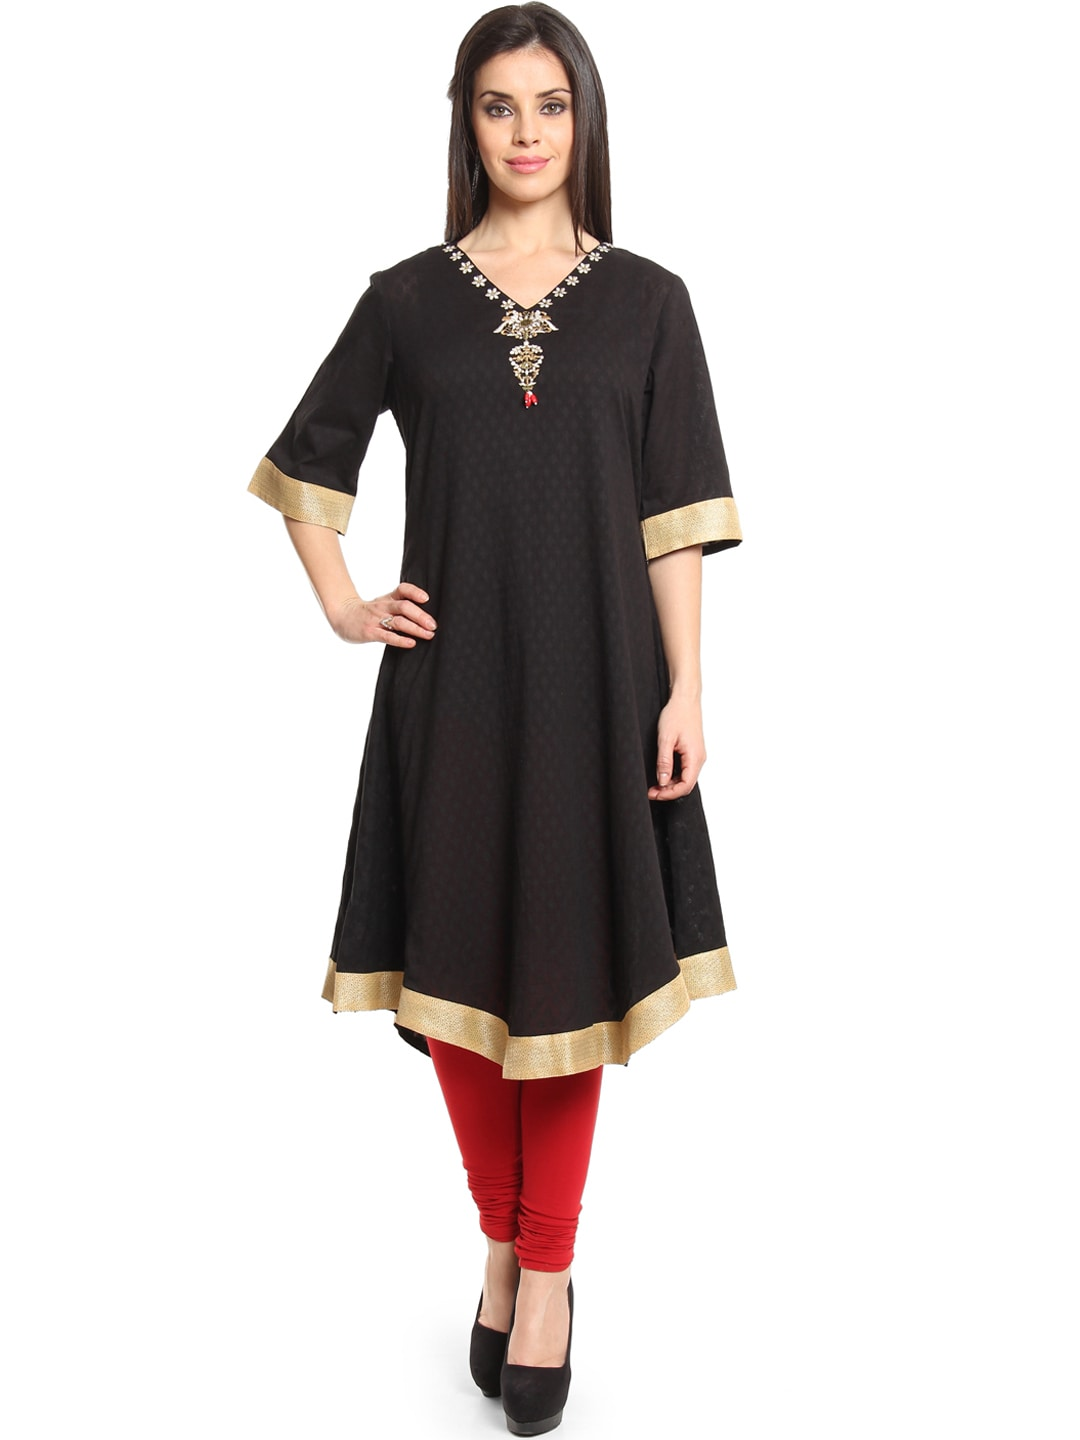 Shraddha Kapoor for IMARA Women Black Jacquard Anarkali Kurta